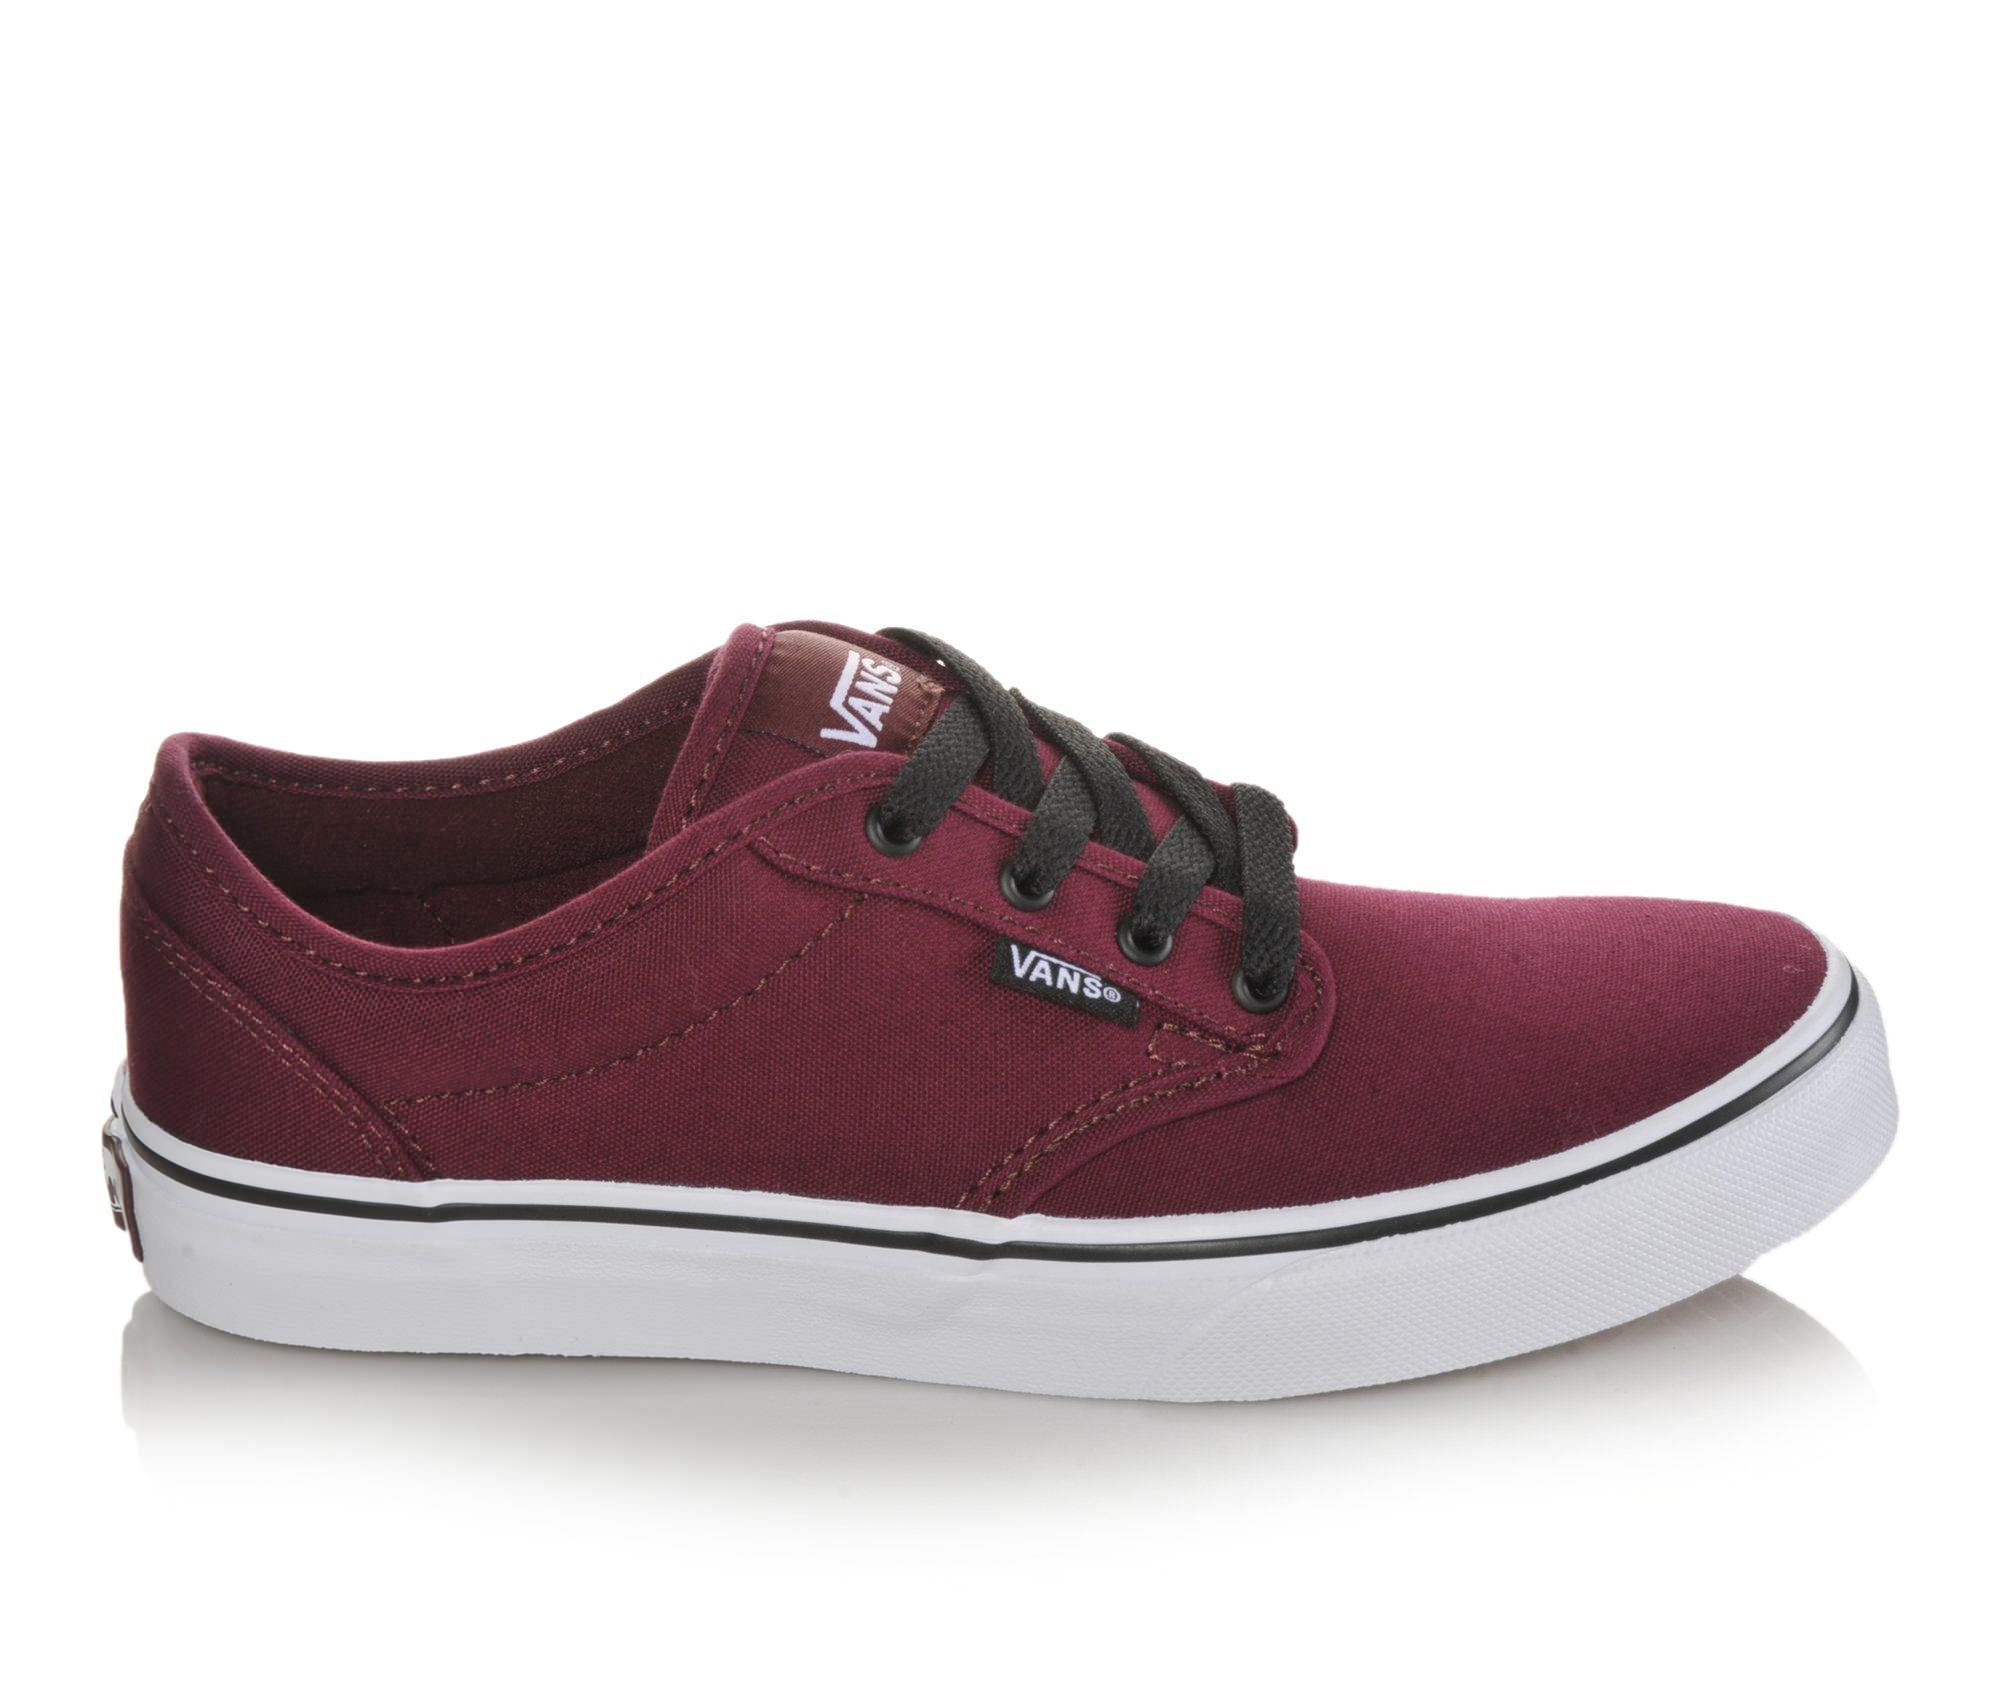 Boys' Vans Atwood Skate Shoes (Red)